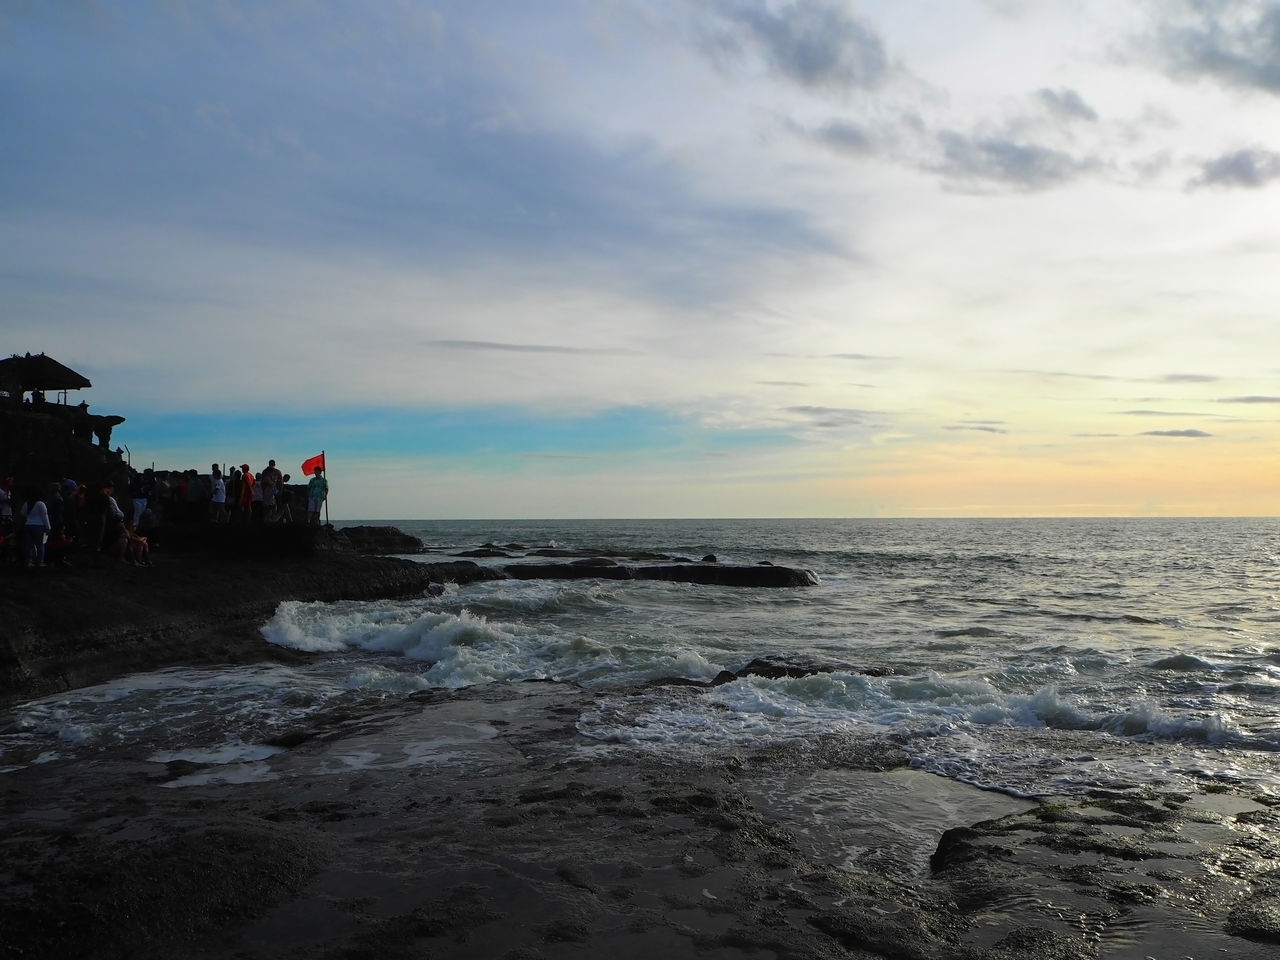 💛🌊 Life Is A Beach 🌊💛 Travel Tanah Lot Wave Bali Bali, Indonesia Beach Beauty In Nature Cloud - Sky Exceptional Photographs Landscapes Lifestyles Nature Outdoors People People Watching Scenics Sea Sky Sunset Tadaa Community Tranquility Travel Destinations Still Life Capture The Moment